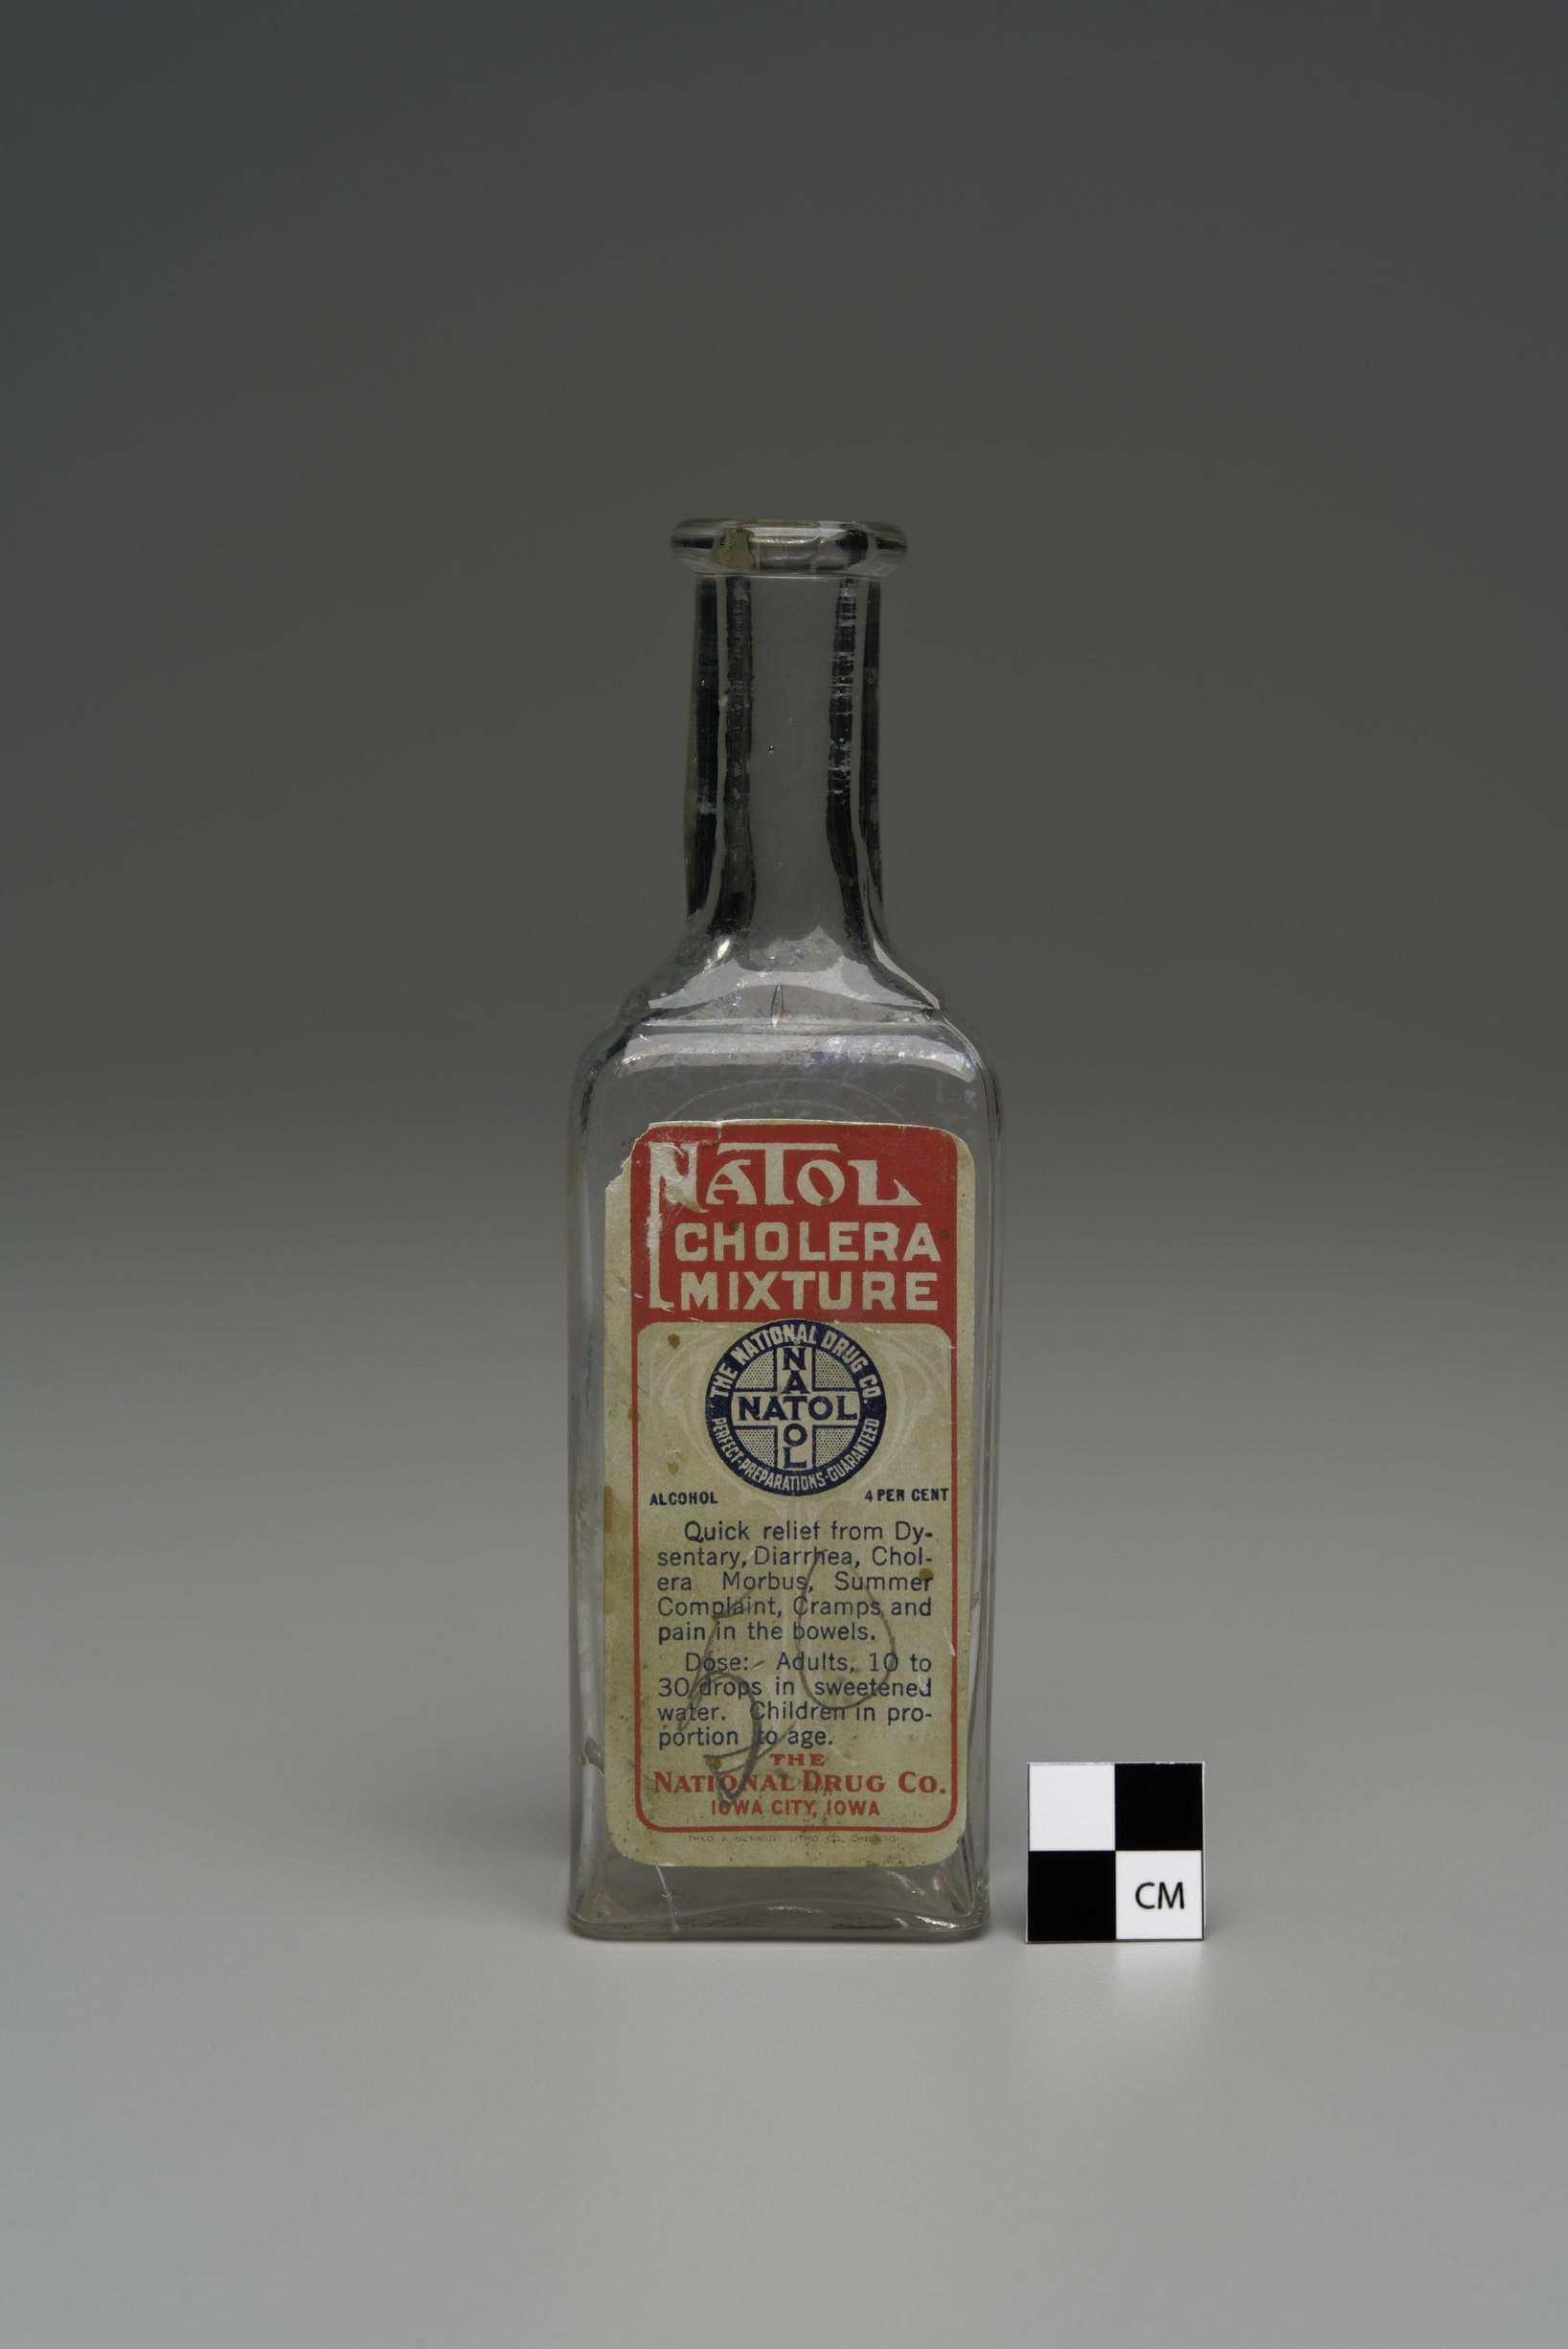 Natol Cholera Mixture Bottle from the Fort Dodge Grocery, 14FD315 - 5